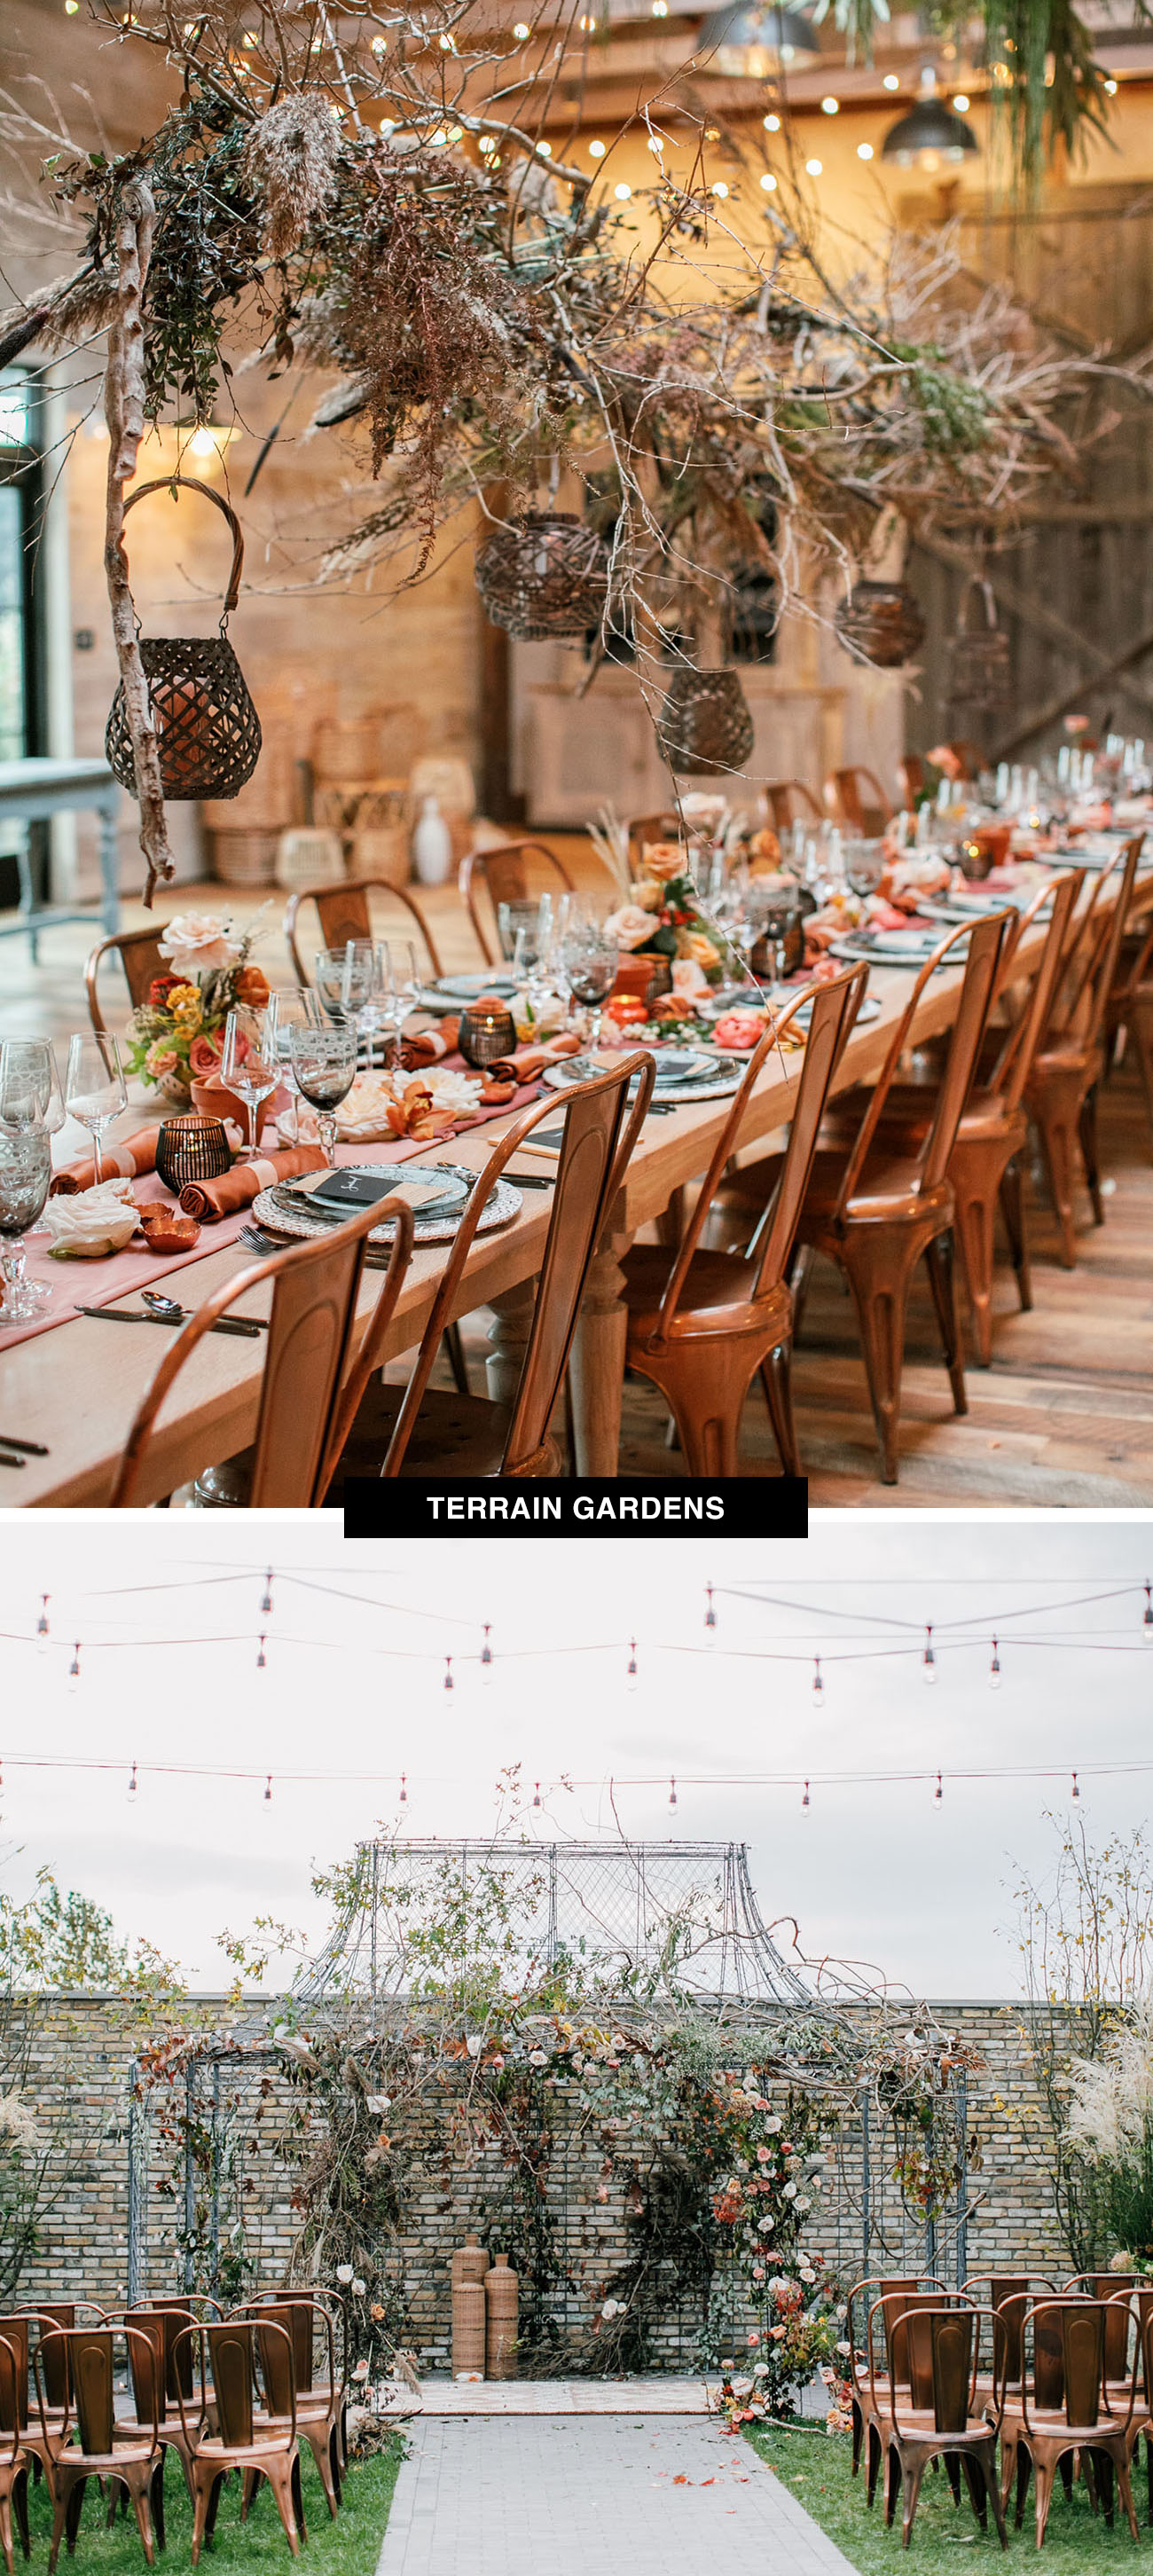 Terrain Gardens wedding venue in Pennsylvania is the place to get married for Anthropologie lovers